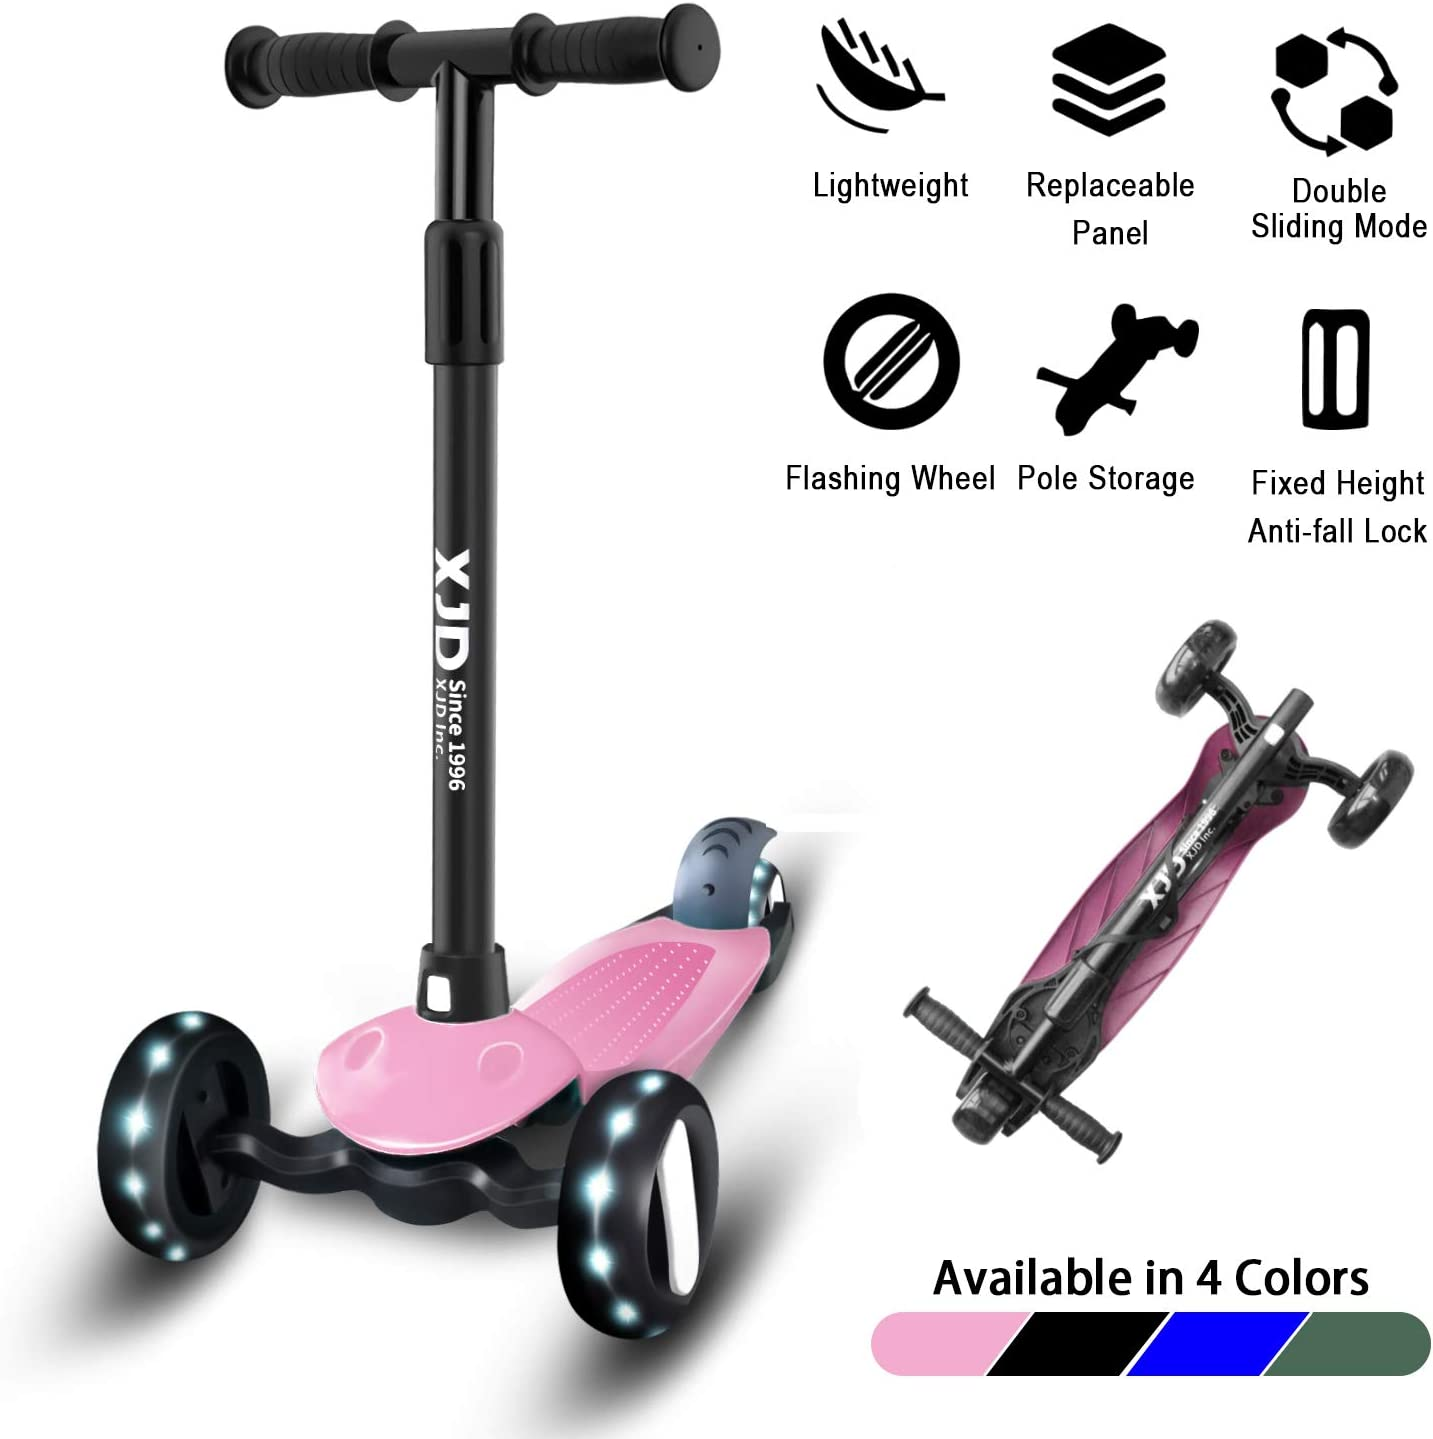 XJD Toddler Scooter Kick Scooter for Kids 3 Wheel Scooter for Toddlers Boys Girls Direction Lock Switch PU Flashing Wheels 4 Adjustable Height Great for Children from 2 to 6 Years Old